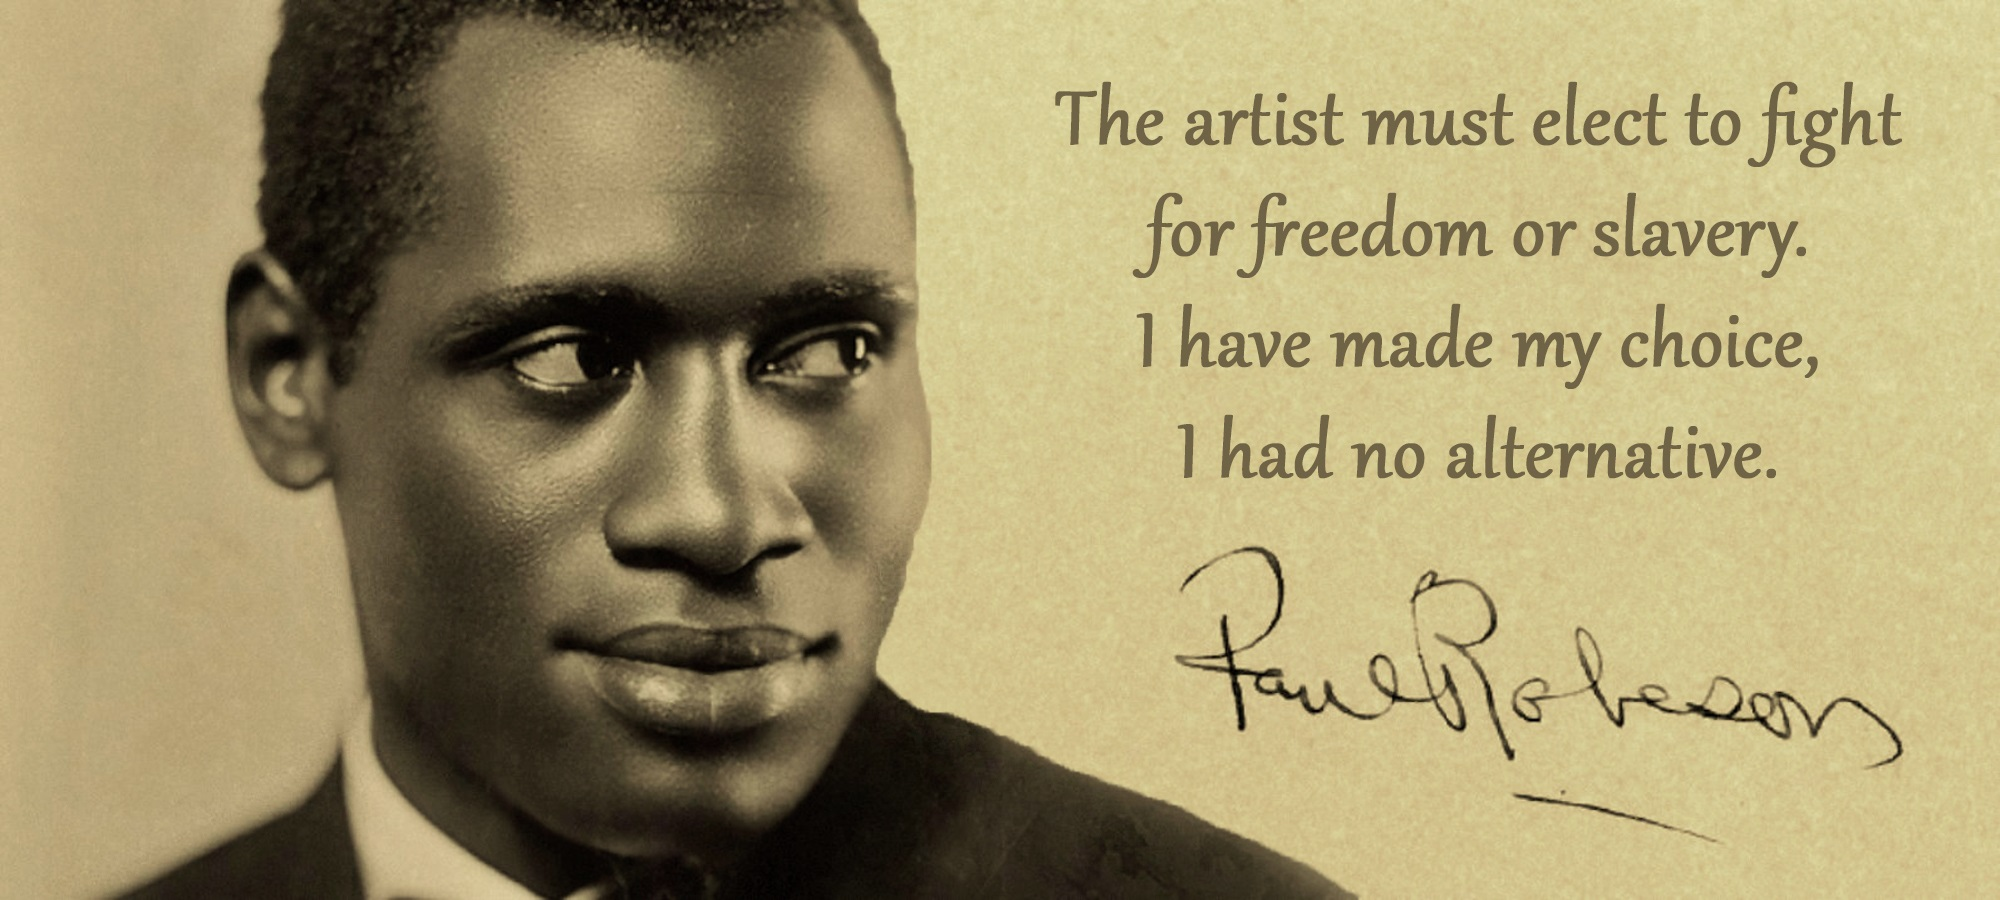 00-paul-robeson-fight-for-freedom-100117